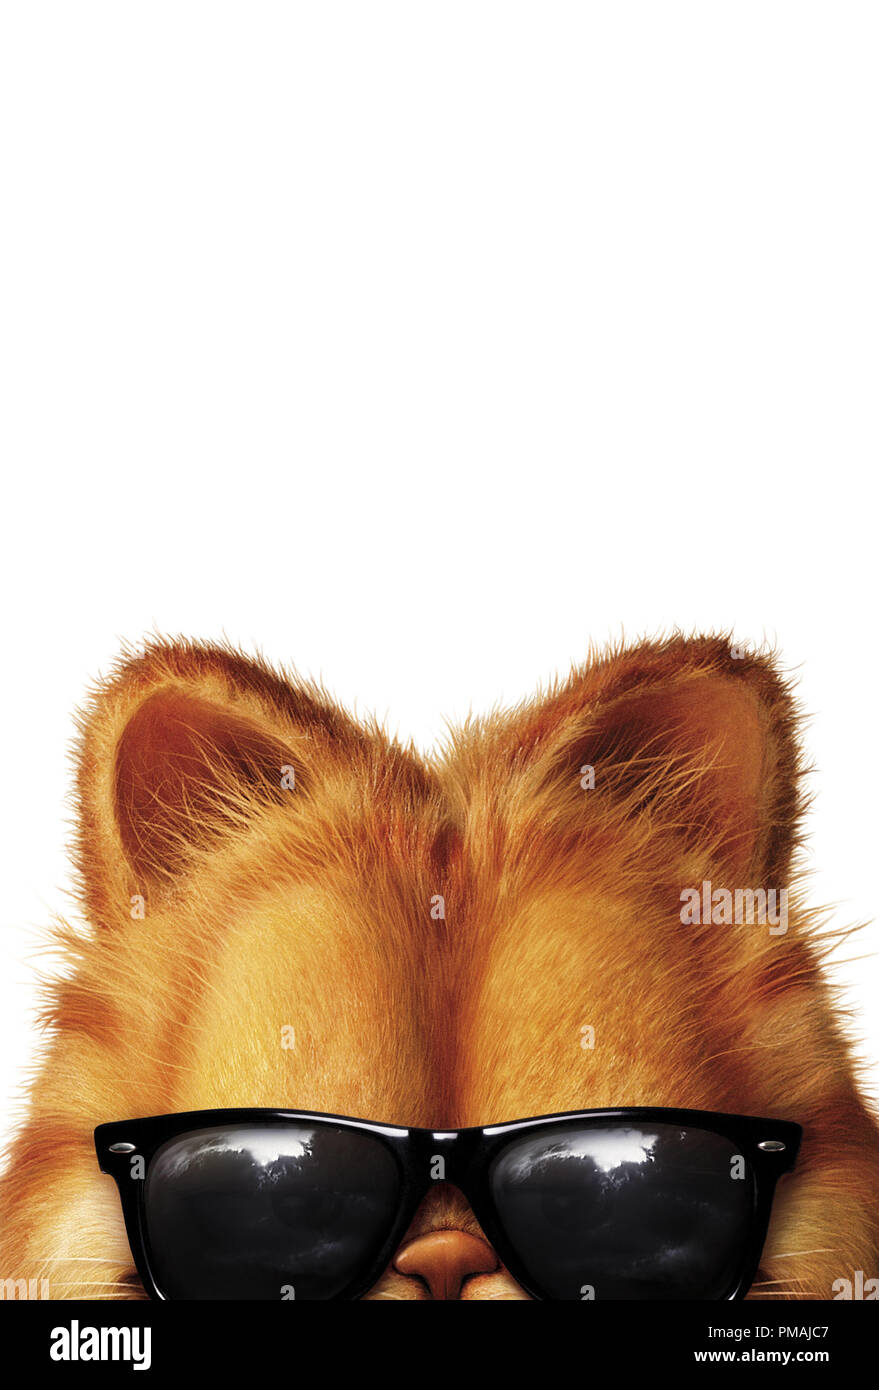 Garfield The Movie 2004 Poster Stock Photo Alamy